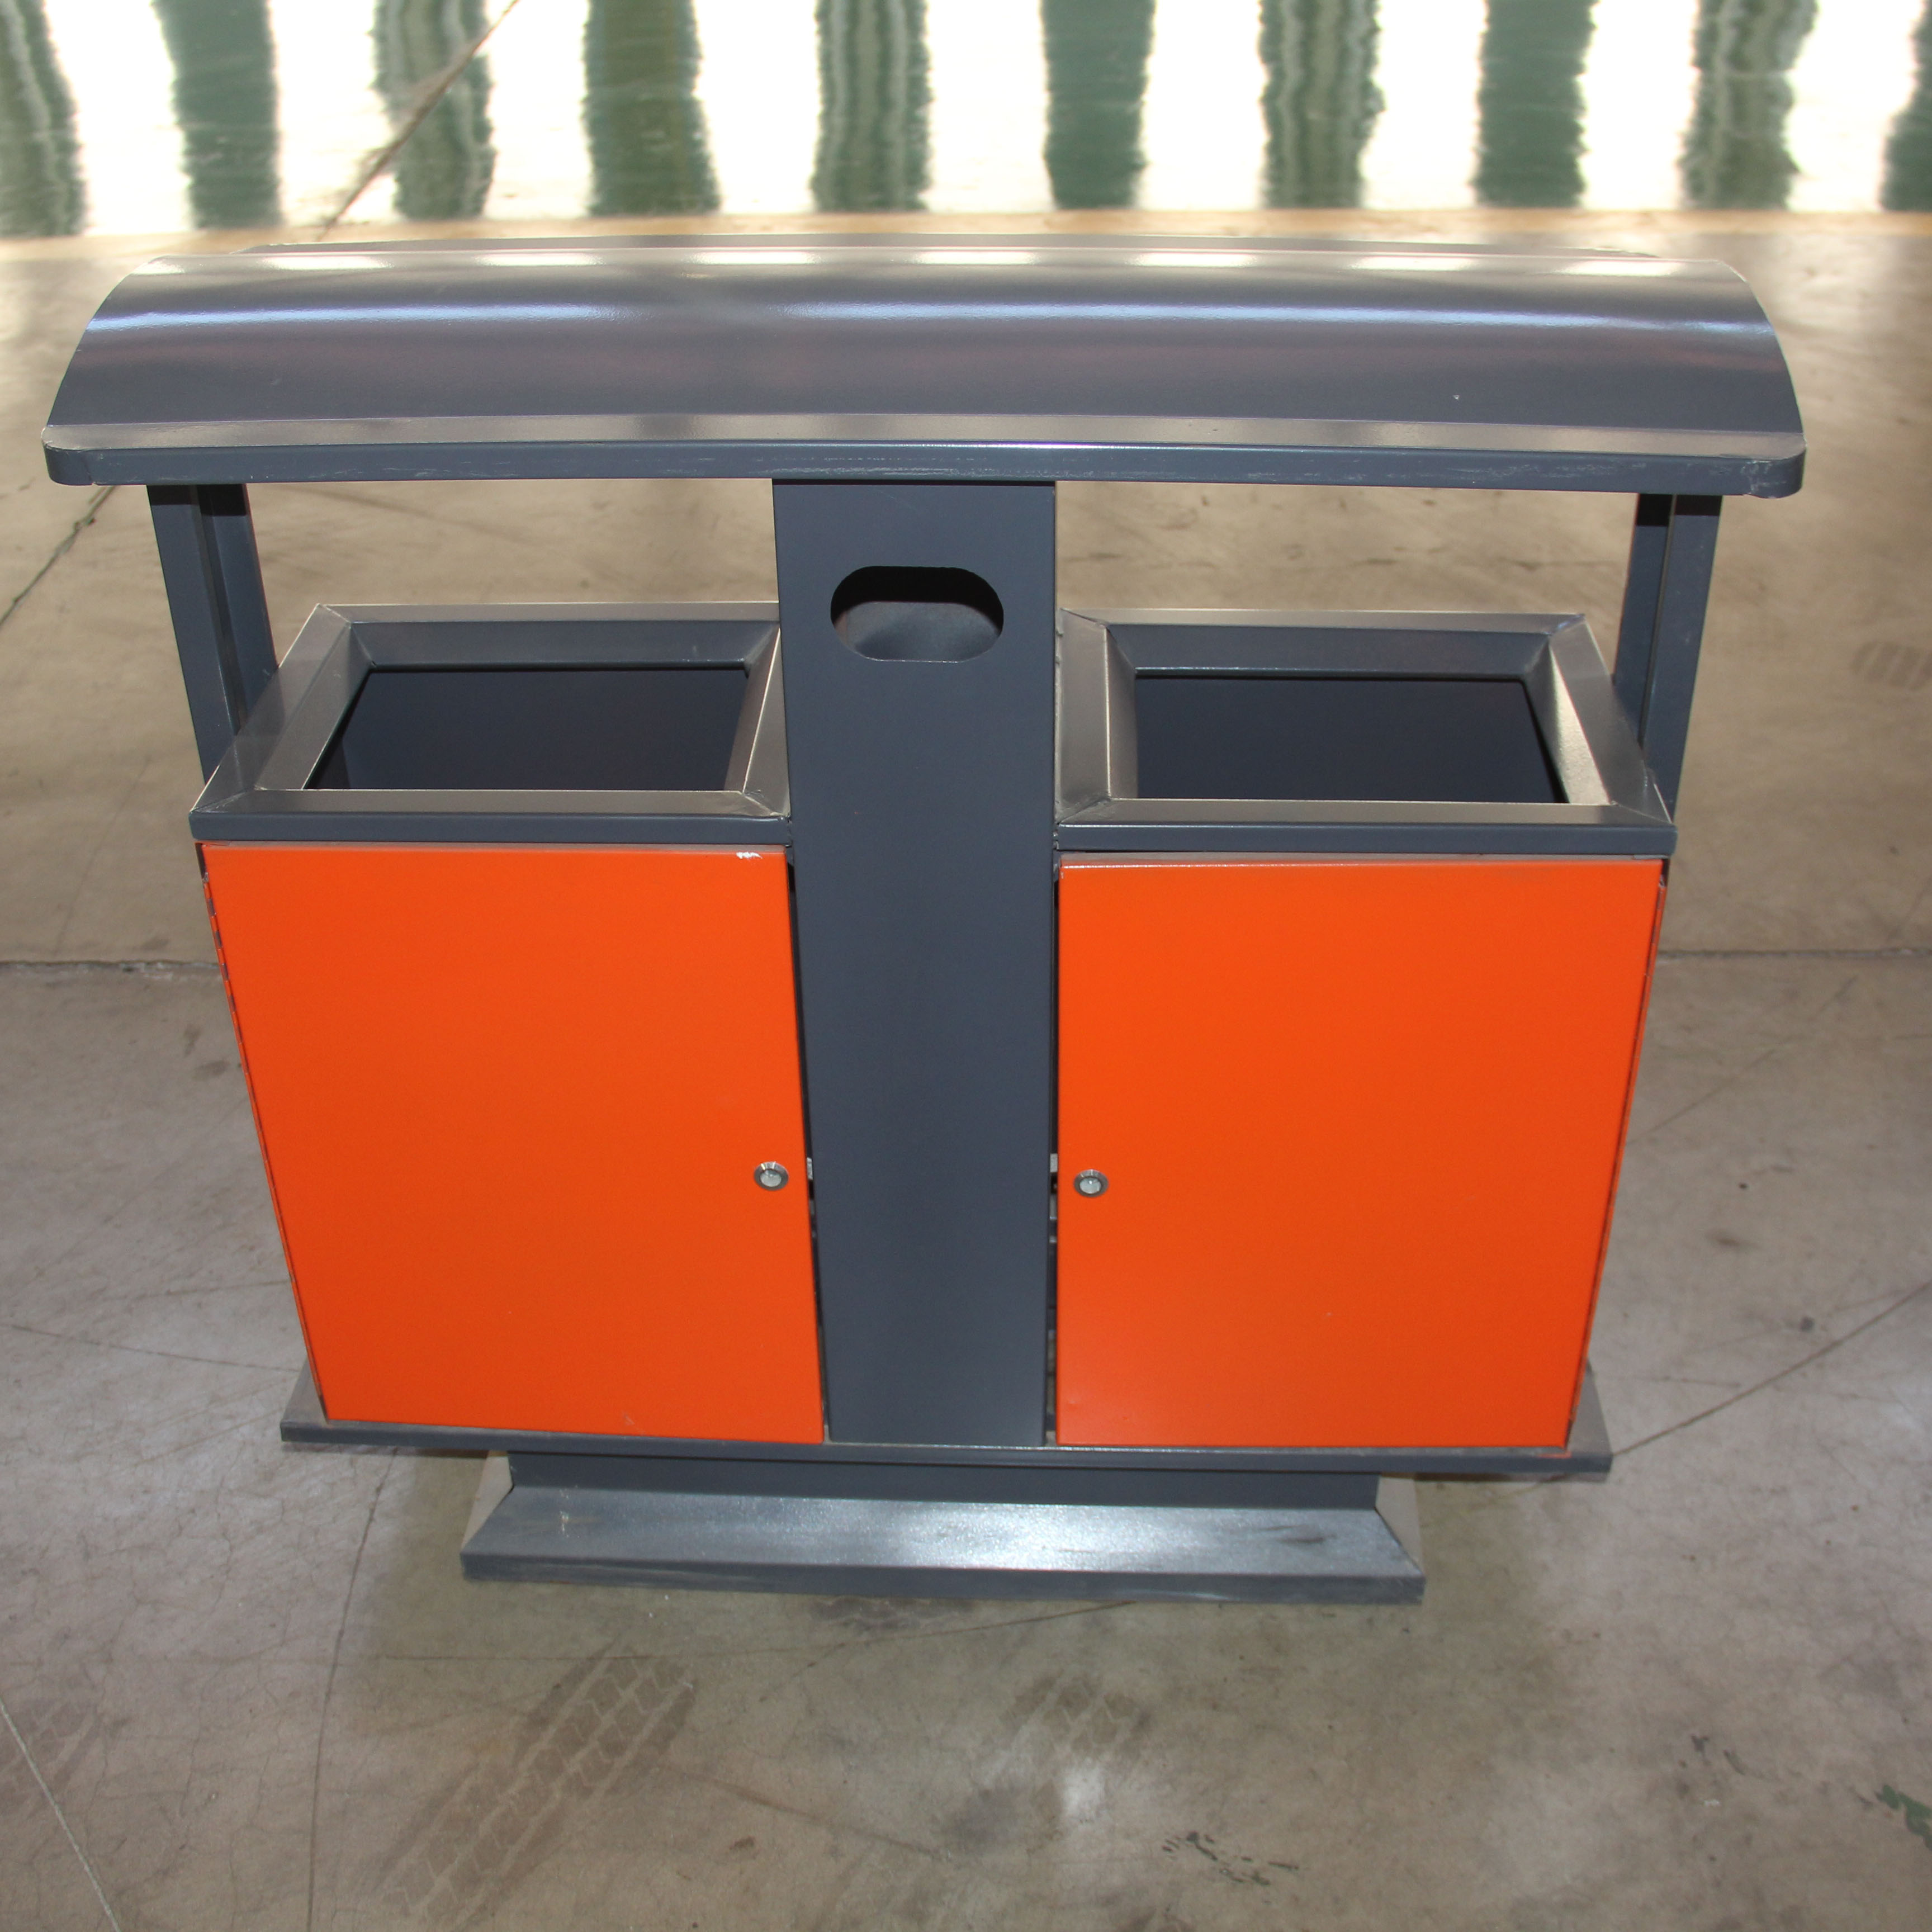 Metall outdoor recycle zwei fach mülleimer bin